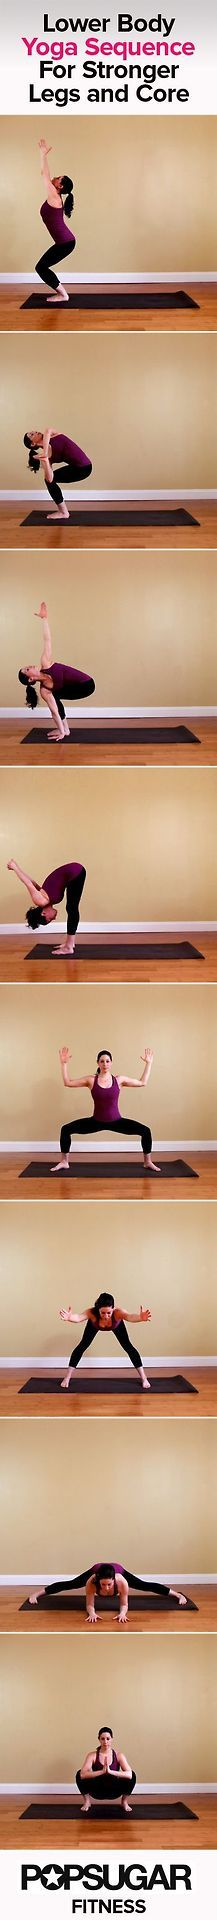 Lower Body Yoga Sequence For Stronger Legs and Core